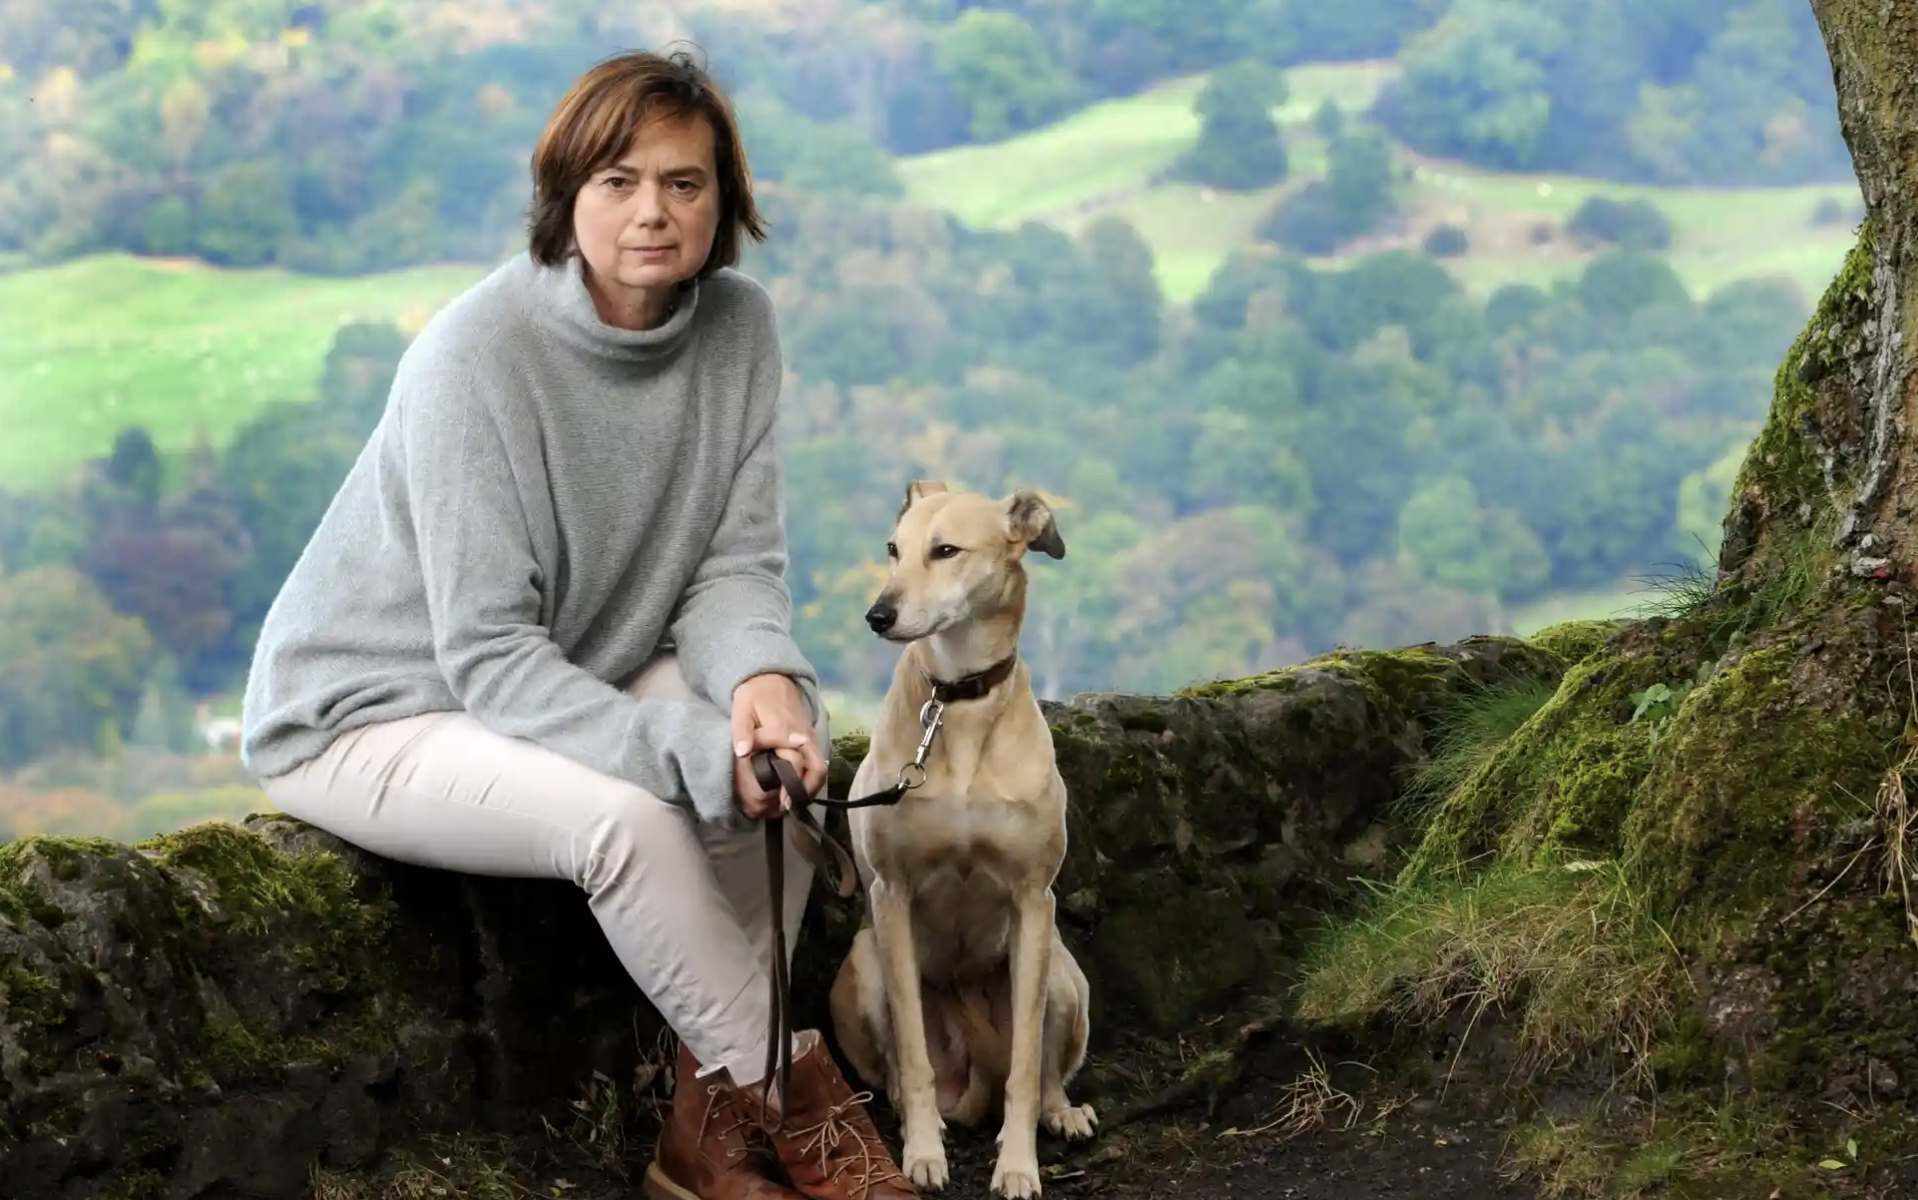 Rosie Ayliffe on Death, Loss and Courage Rosie Ayliffe On Death, Loss and Courage Rosie Ayliffe On Death, Loss and Courage – Episode 46 of The Grace Tales Podcast